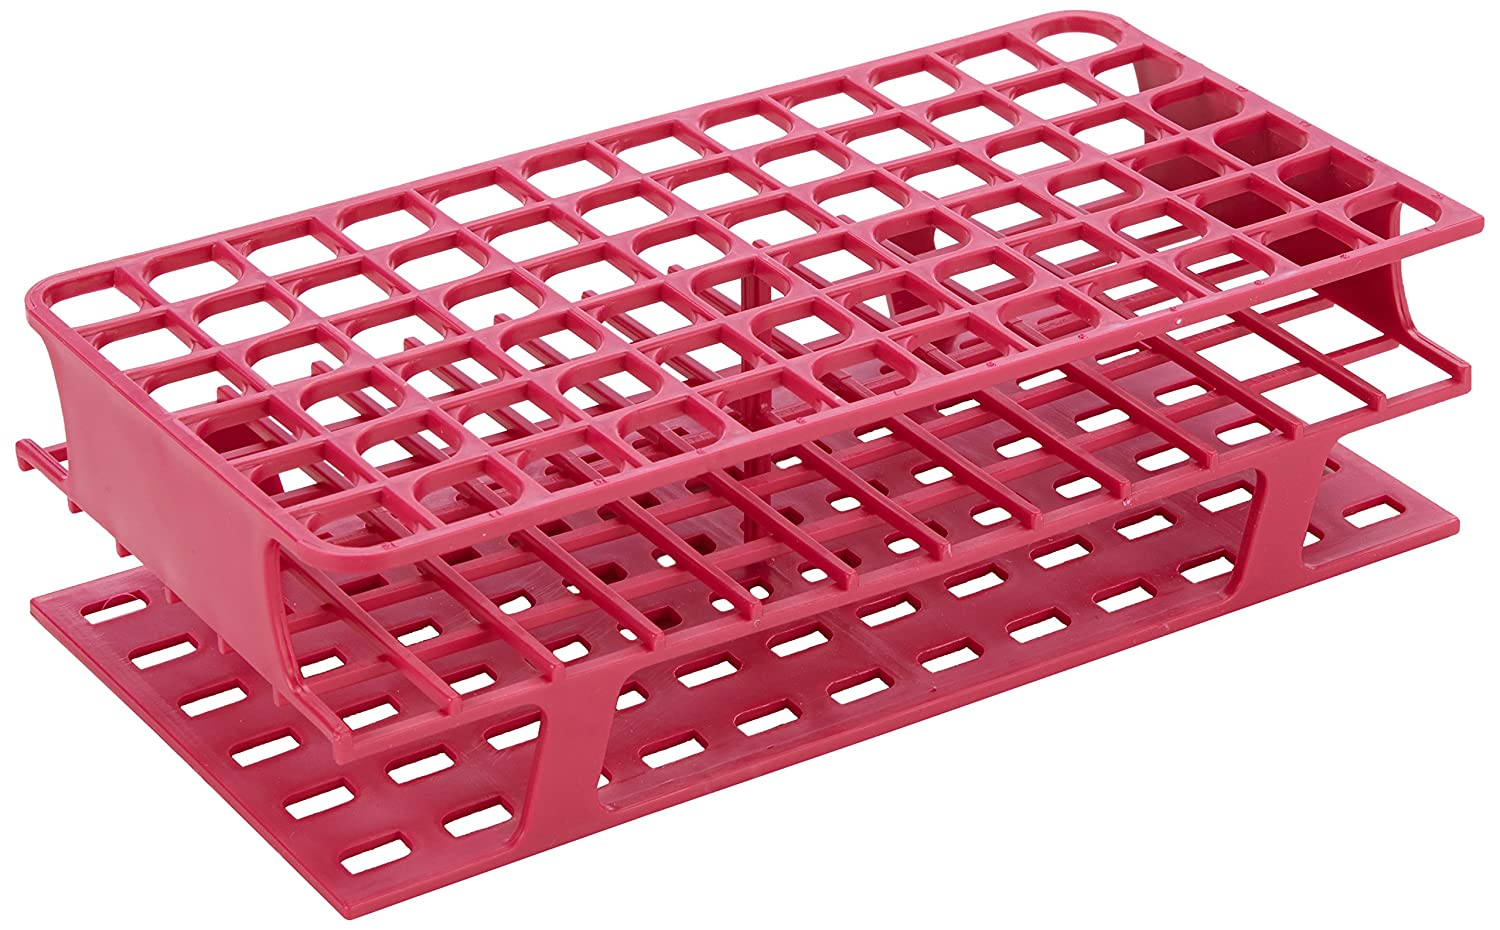 Heathrow Scientific HD27552D Polypropylene Test Tube Rack, Onerack Full Size, 127 mm Length x 250 mm Width x 70 mm Height, 16 mm, Red HS27552D